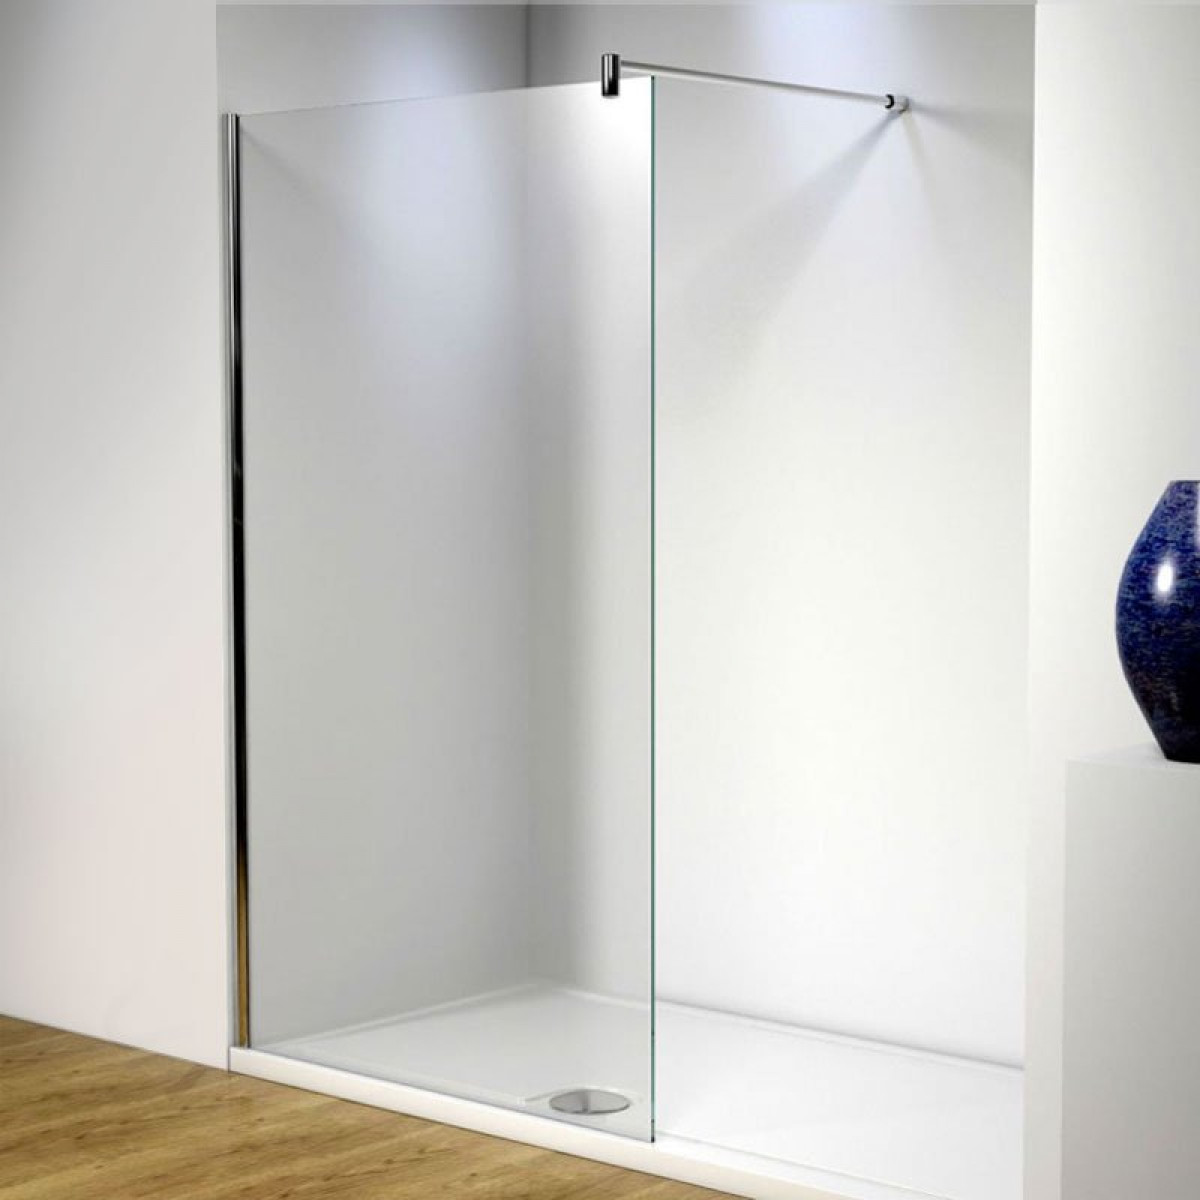 Kudos Ultimate 1200mm Wetroom Panel